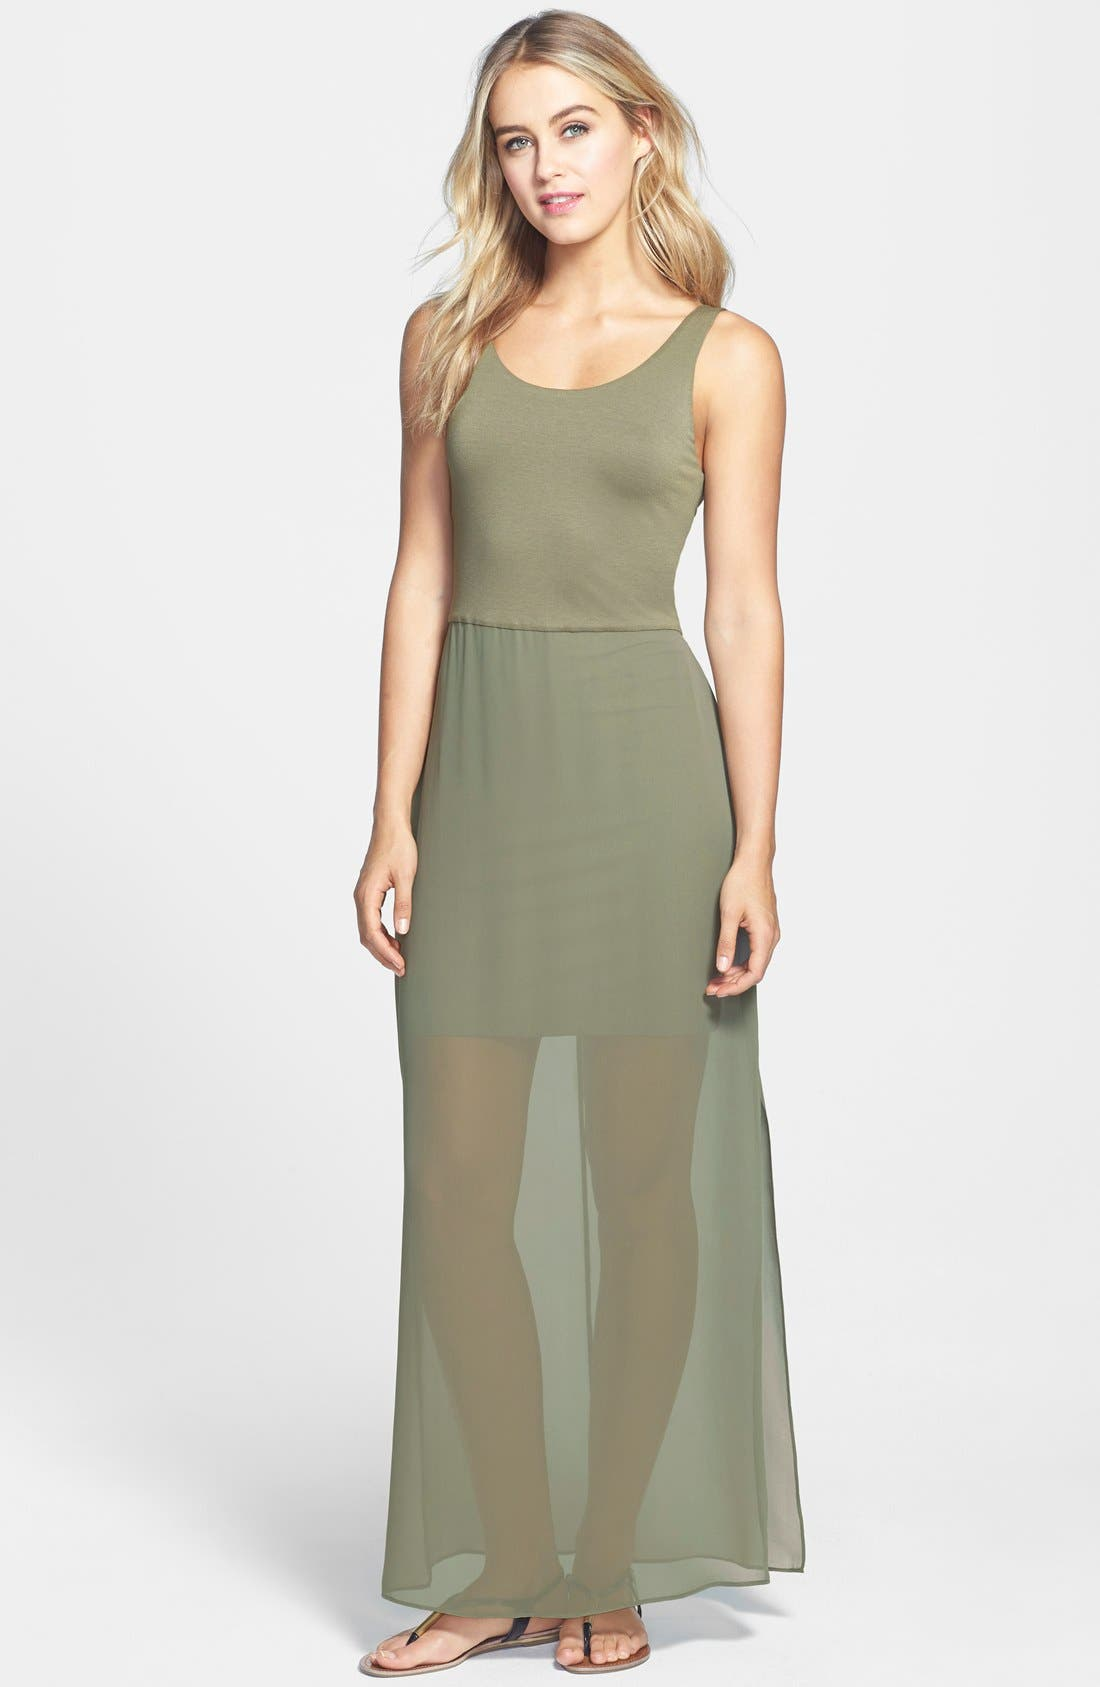 Alternate Image 1 Selected - Two by Vince Camuto Chiffon Overlay Maxi Dress